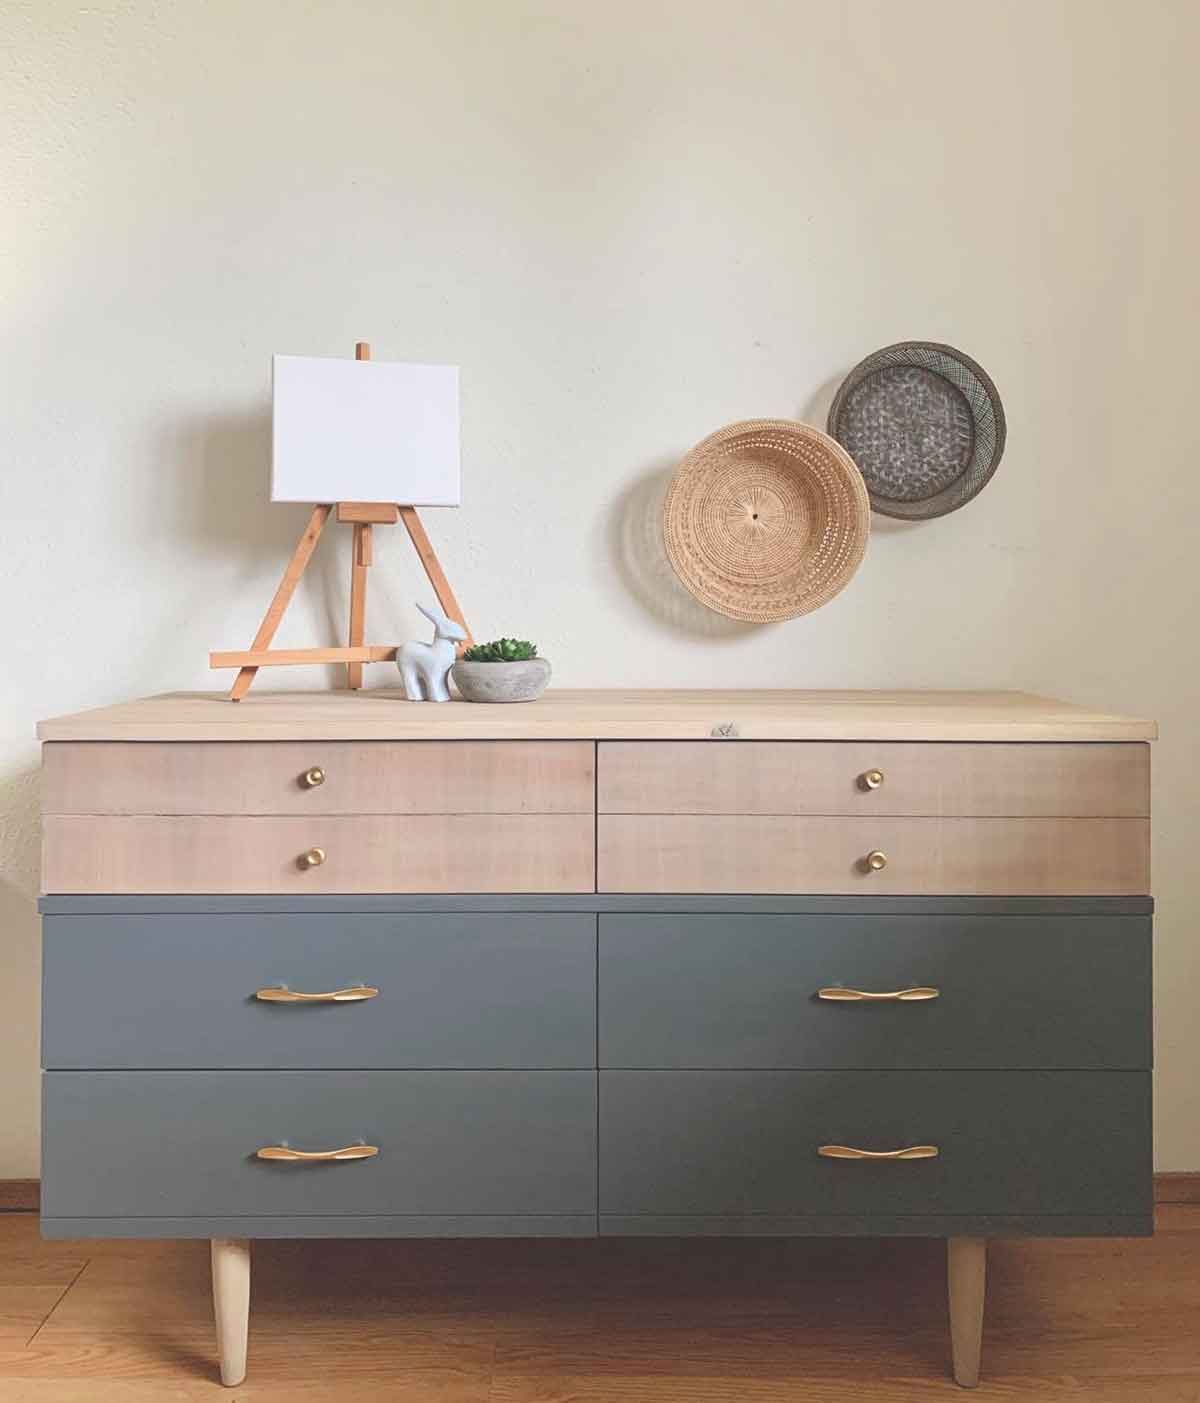 Travel the world with Tia Leah Creations gray dresser